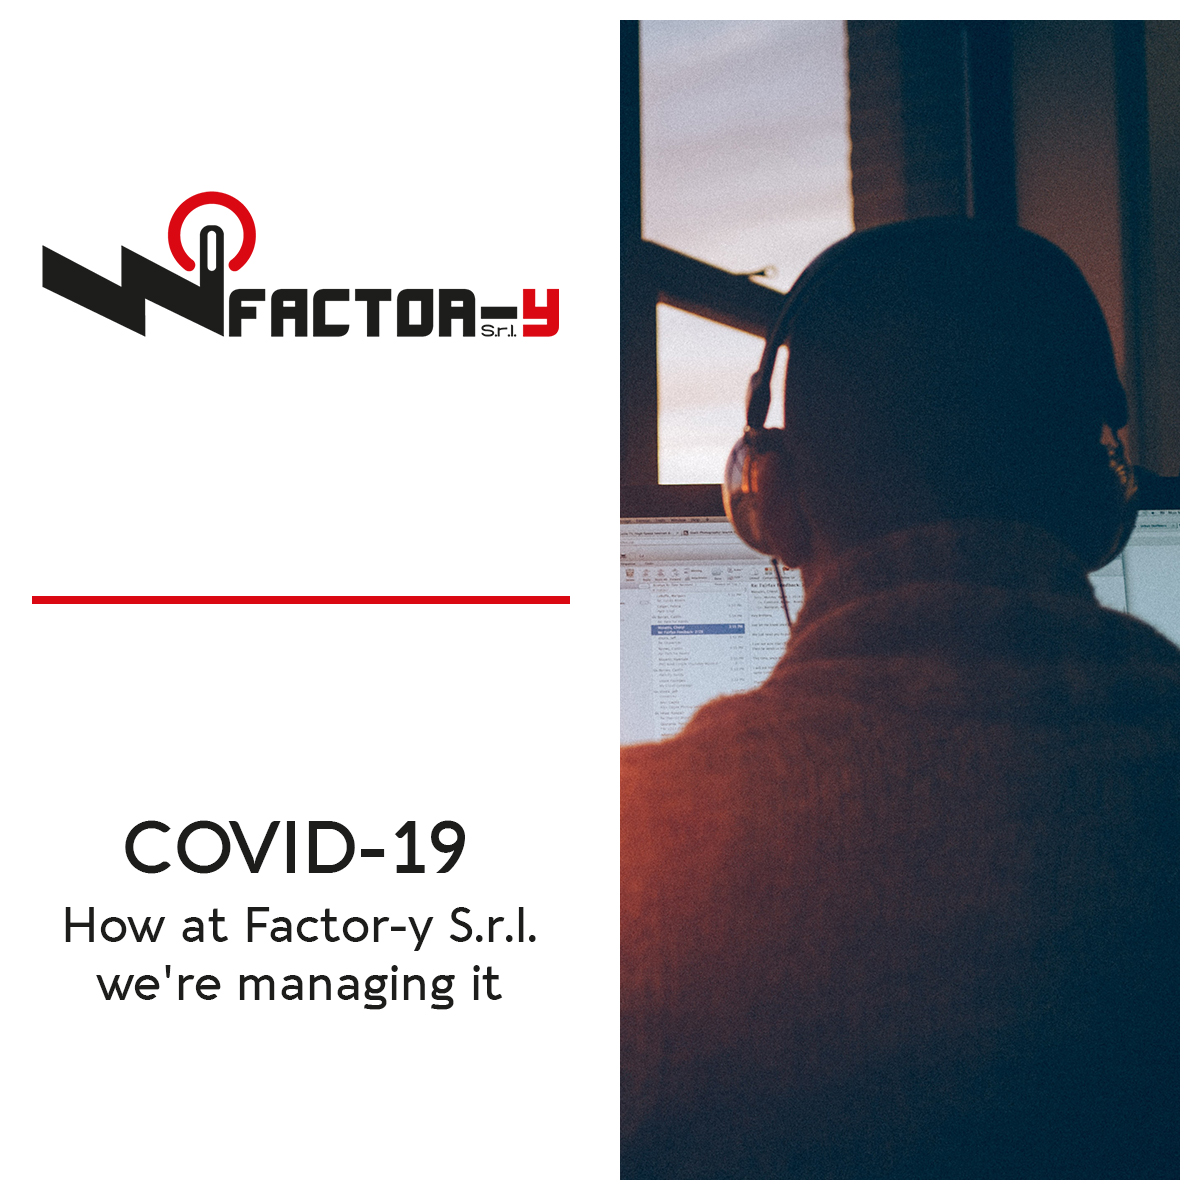 COVID-19 - How at Factor-y S.r.l. we're managing it